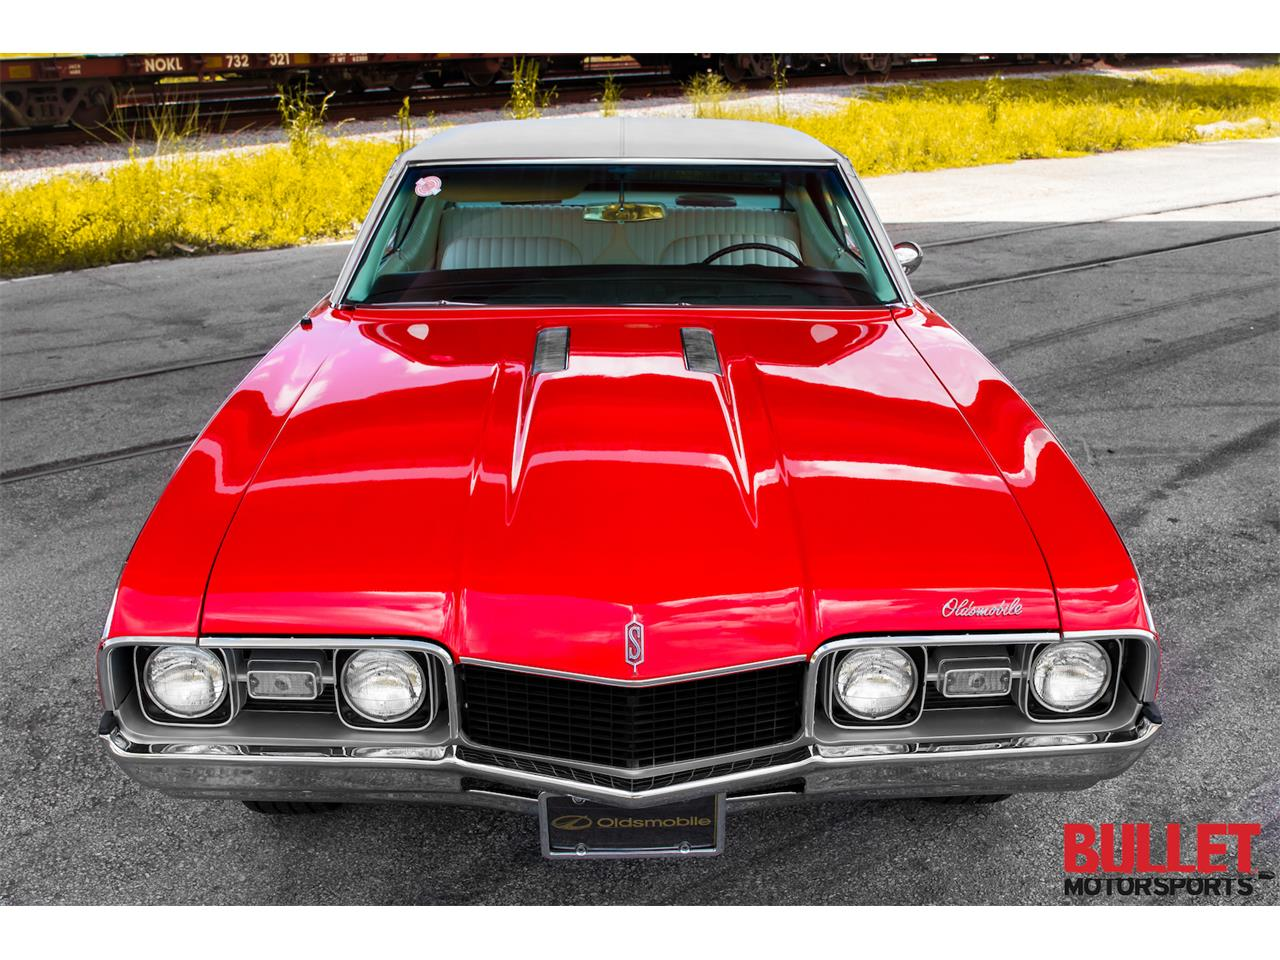 Large Picture of Classic '68 Cutlass Supreme located in Fort Lauderdale Florida Offered by Bullet Motorsports Inc - PZS9